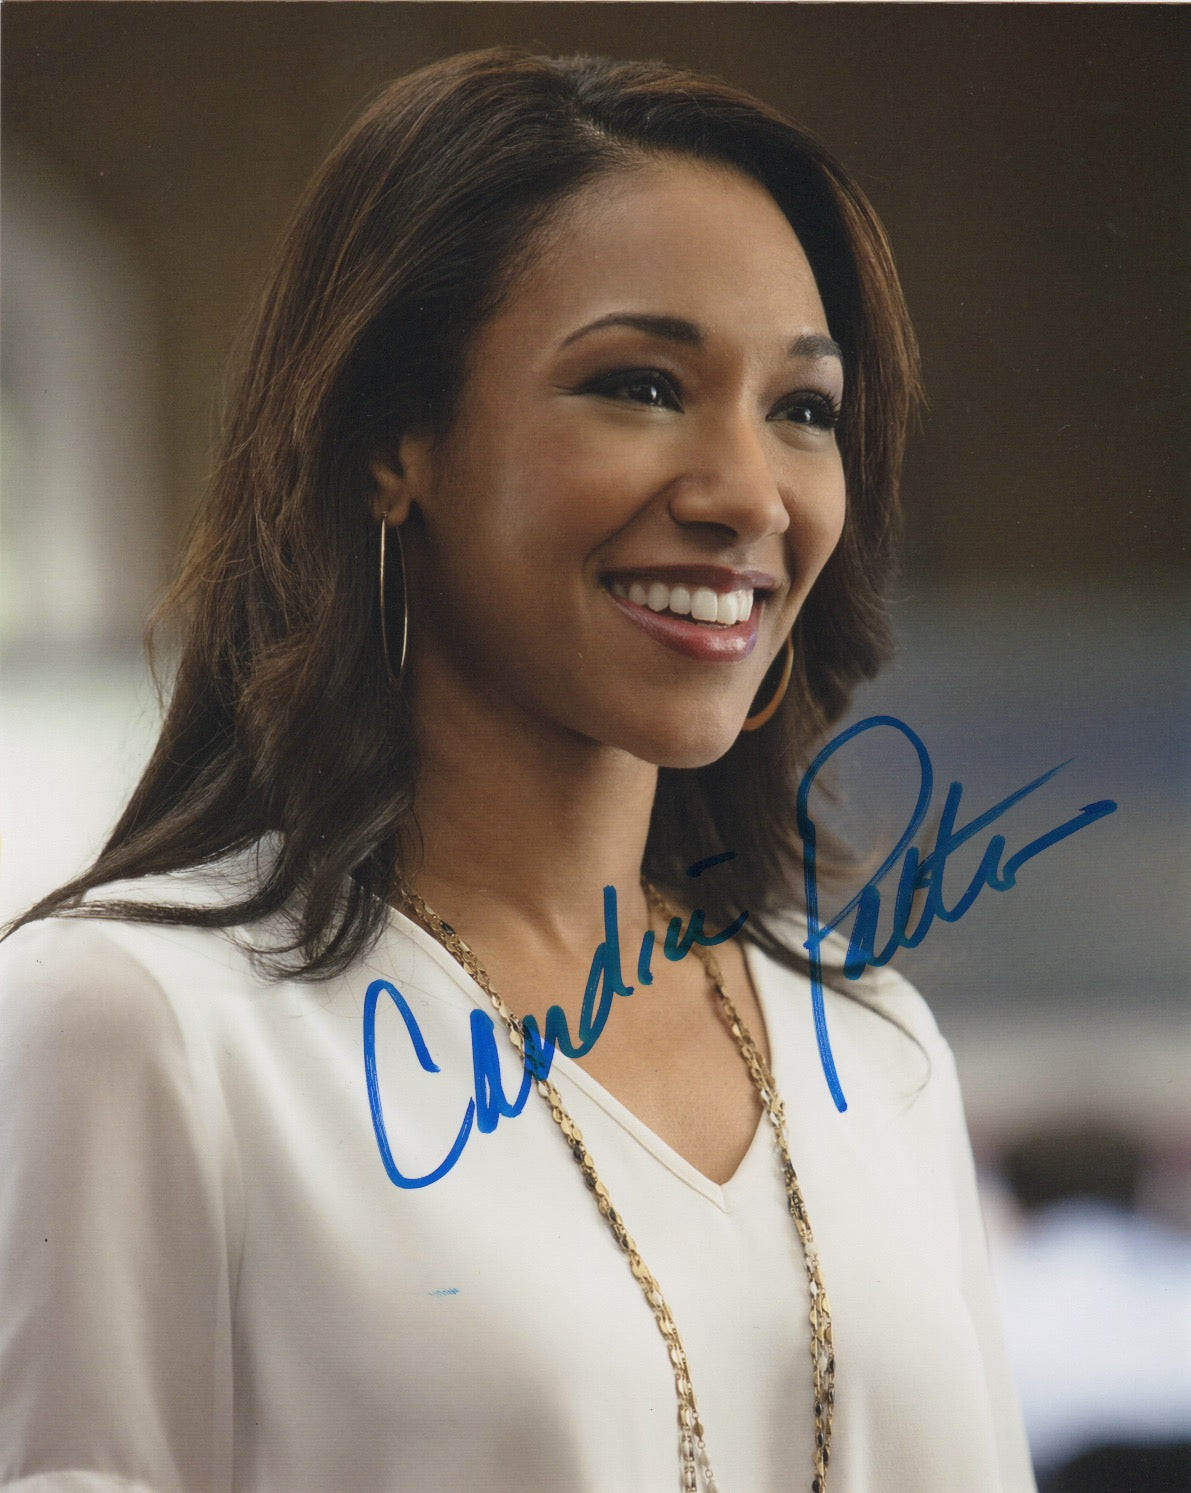 Candice Patton The Flash Signed Autograph 8x10 Photo Arrow #2